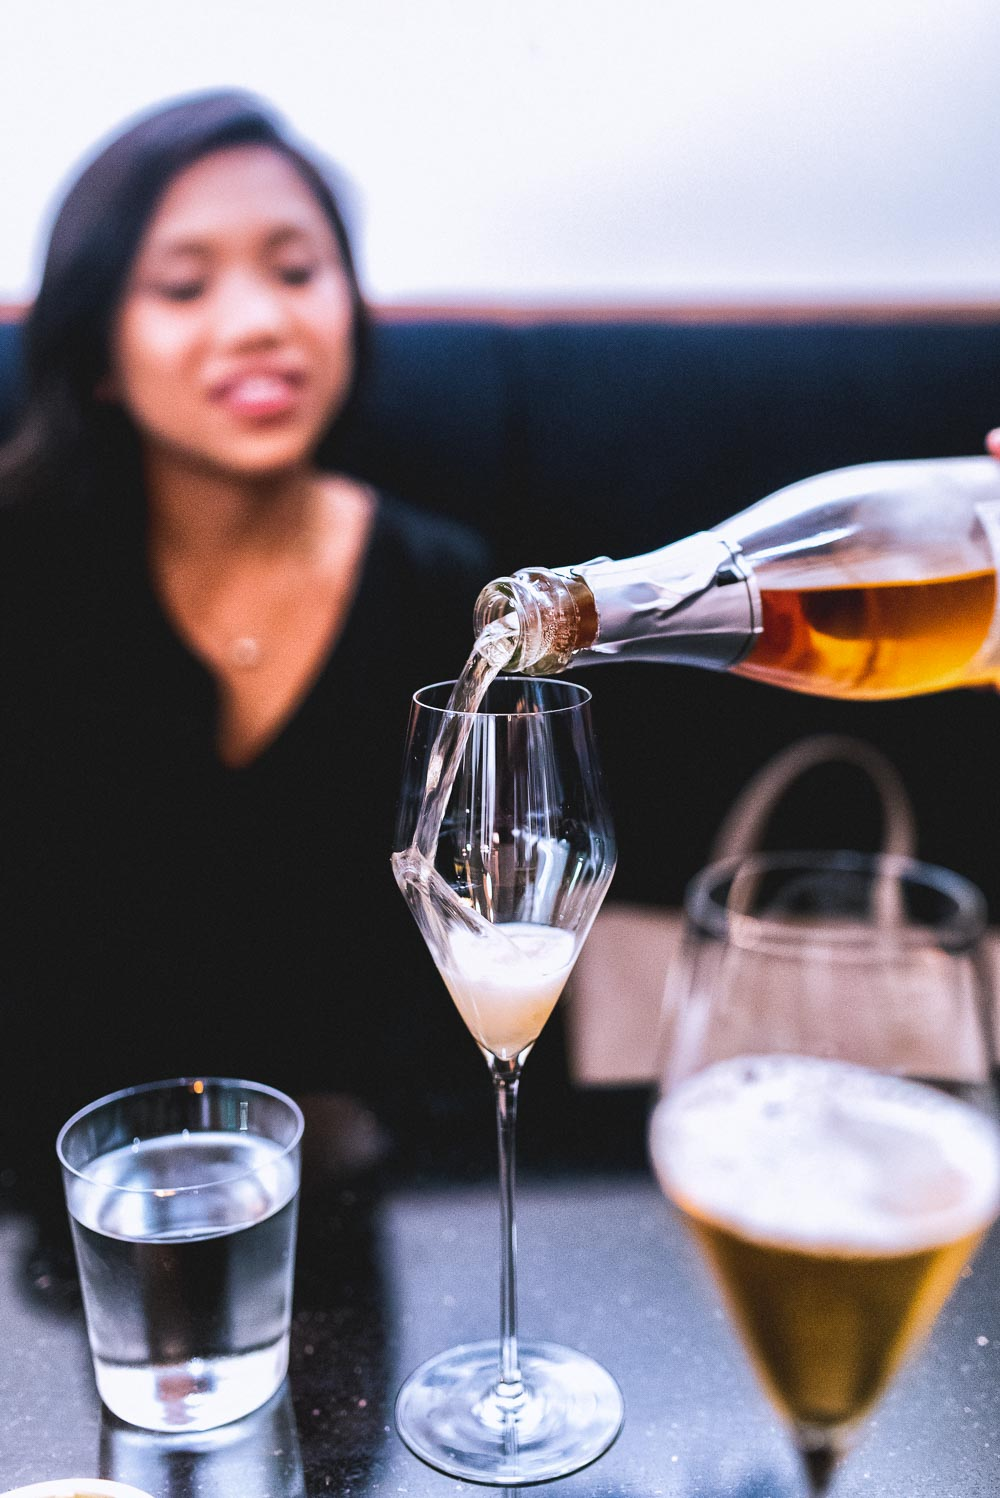 Prosecco-at-Pineapple-and-Pearls-1-of-1.jpg